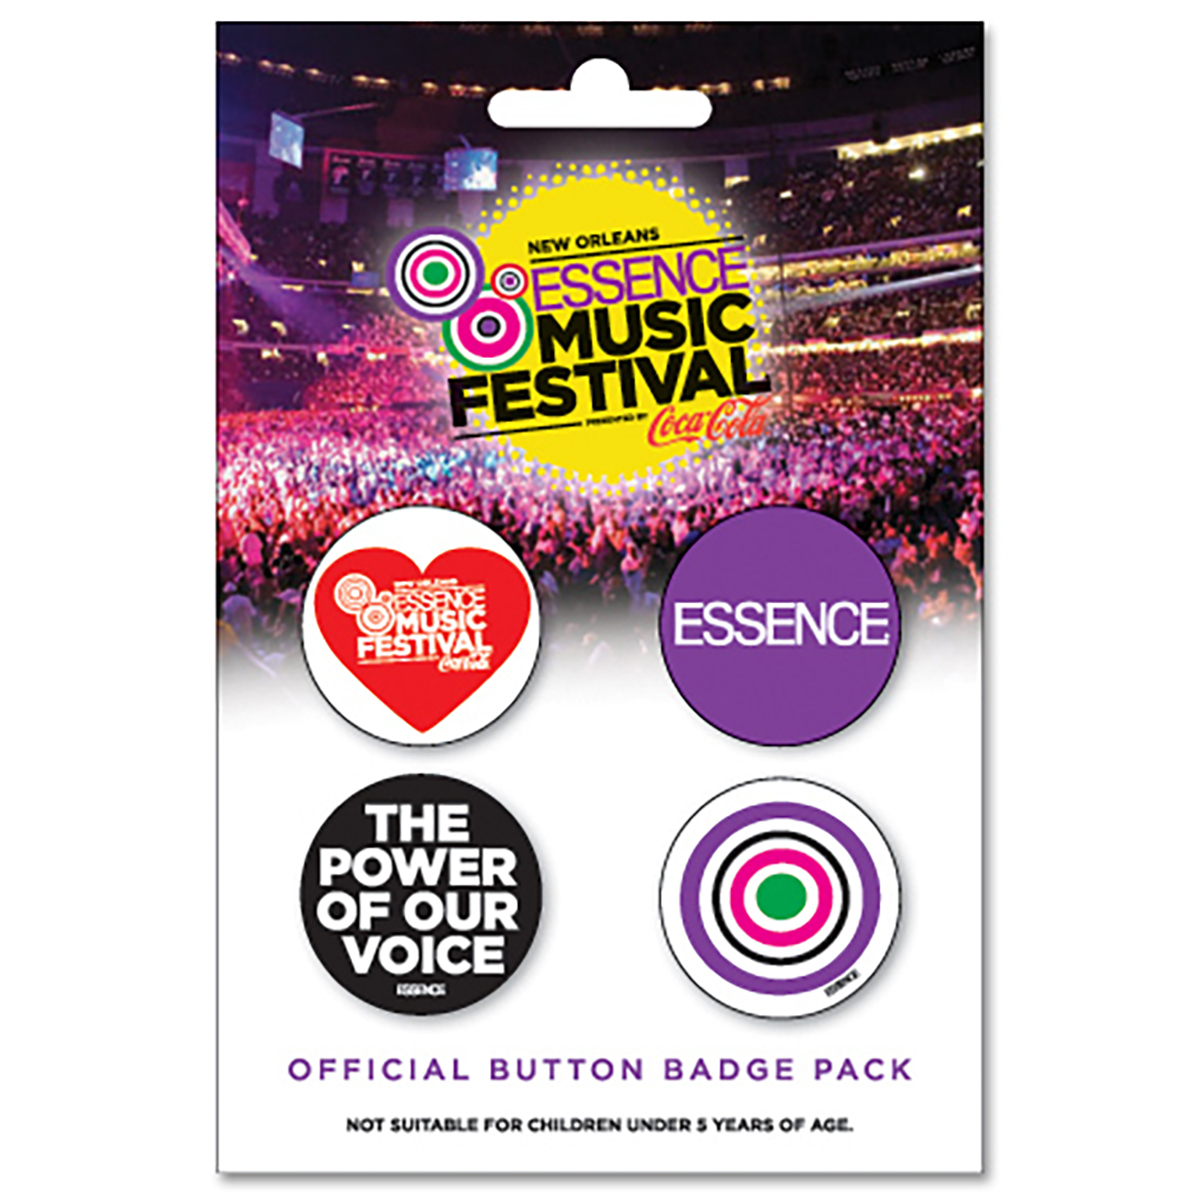 EMF Official Button Badge Pack